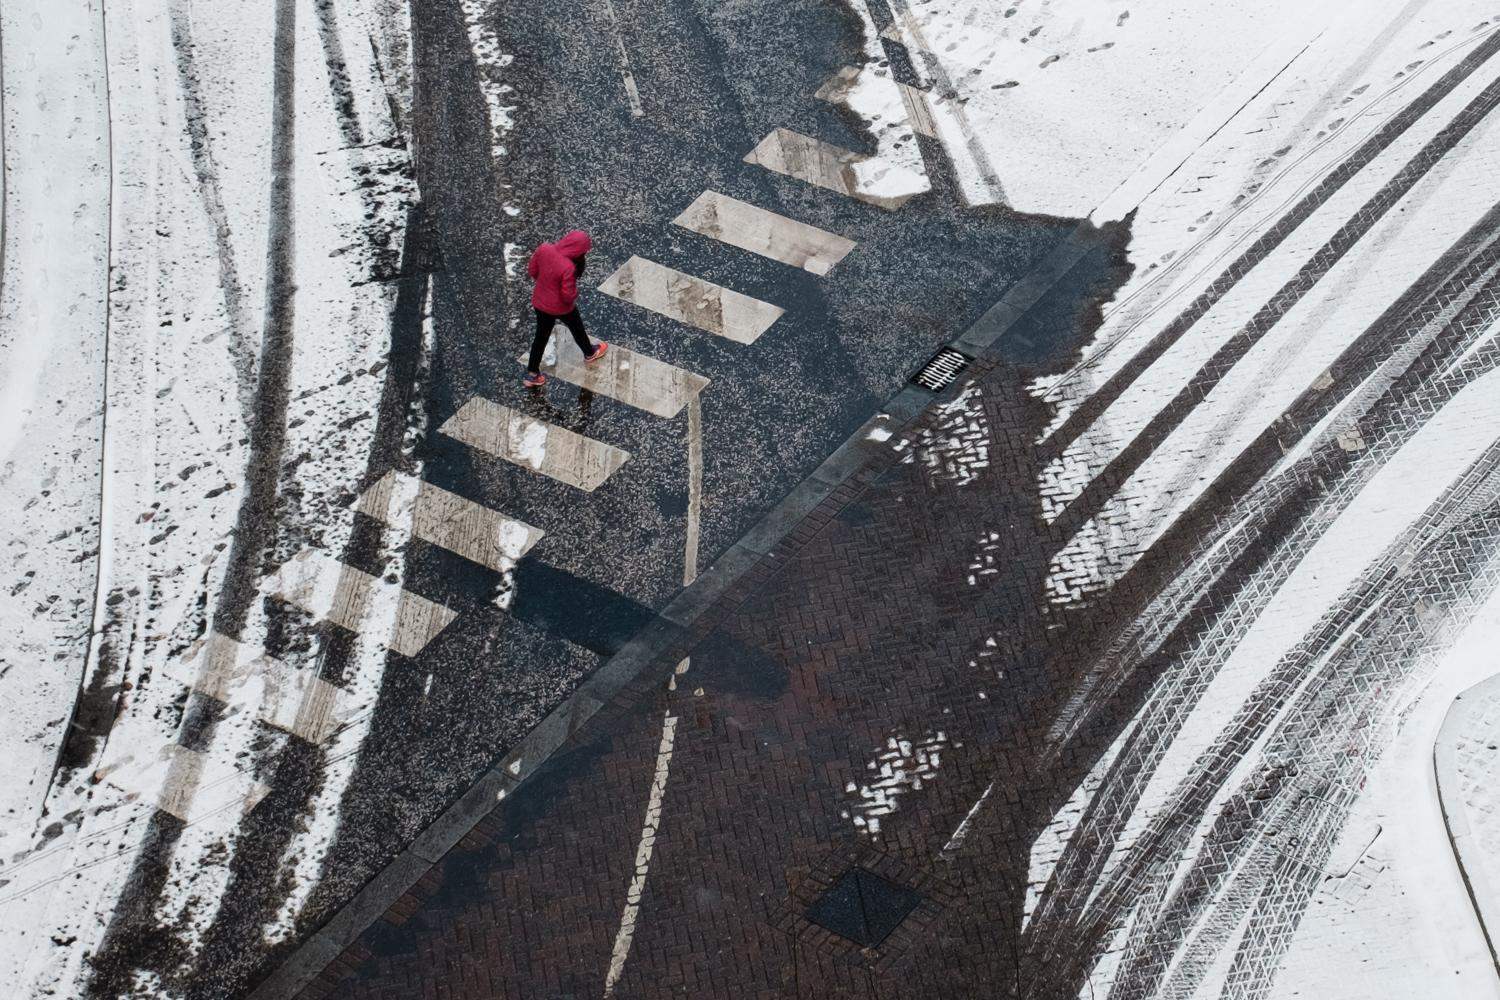 A man in a red coat crossing the road surrounded by snow